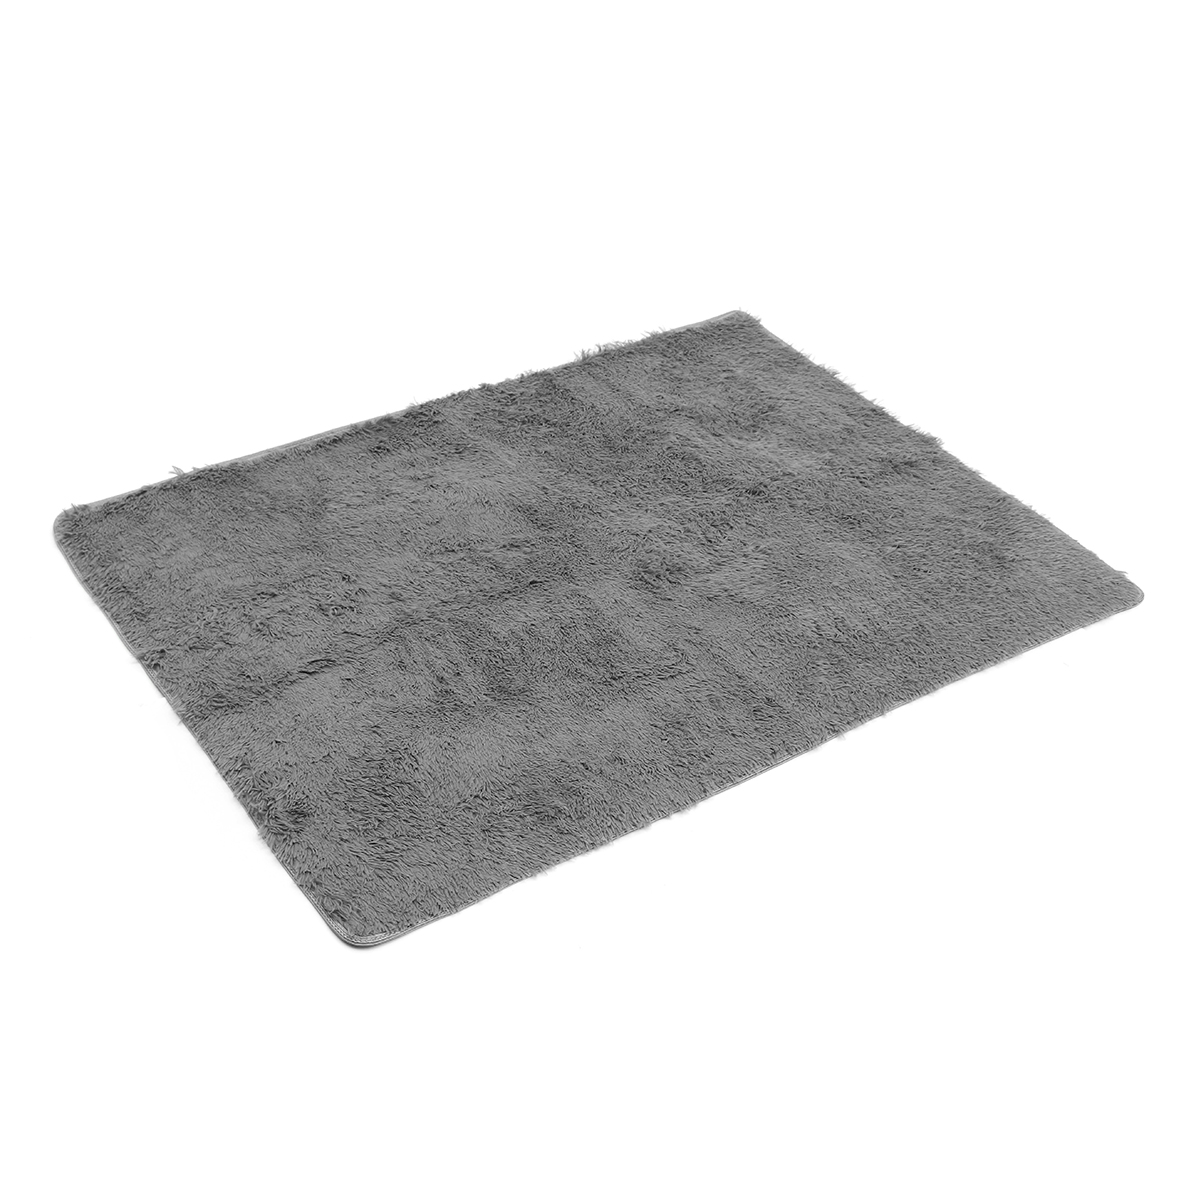 160x230cm shaggy tapis de sol carpette antid rapant de salon maison longs poils ebay. Black Bedroom Furniture Sets. Home Design Ideas